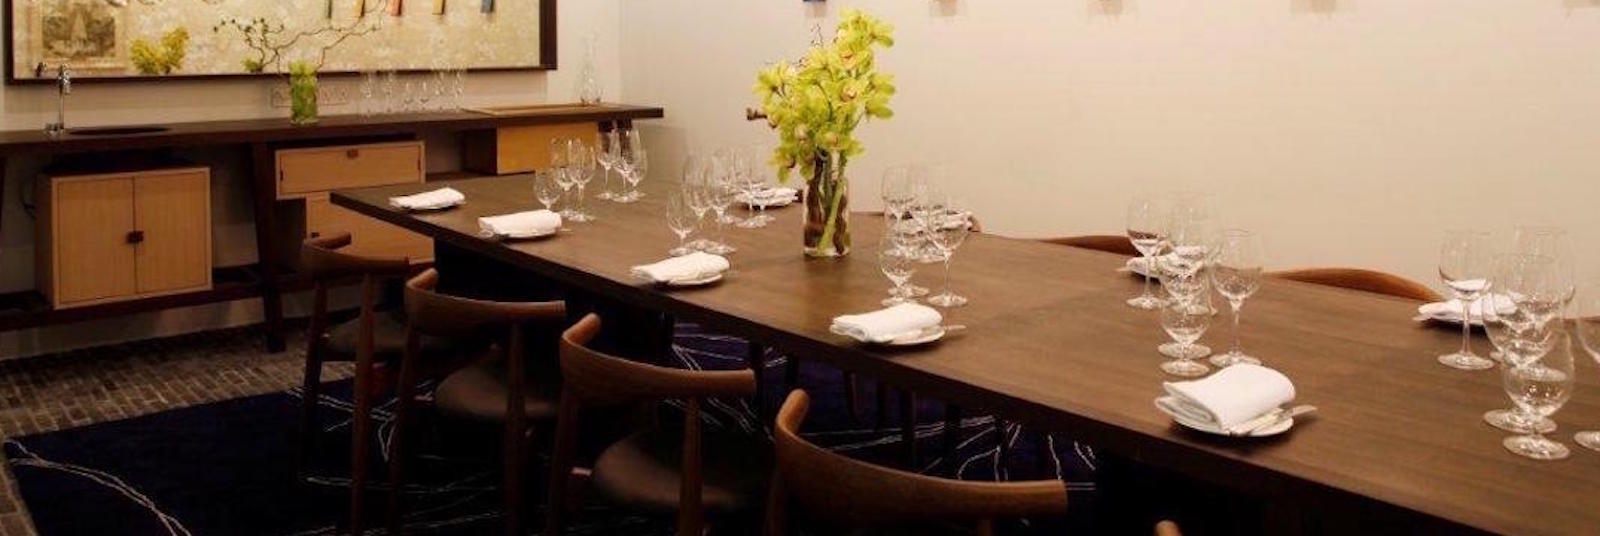 London Private Dining Rooms From The Good Food Guide 2018\'s Top 50 ...